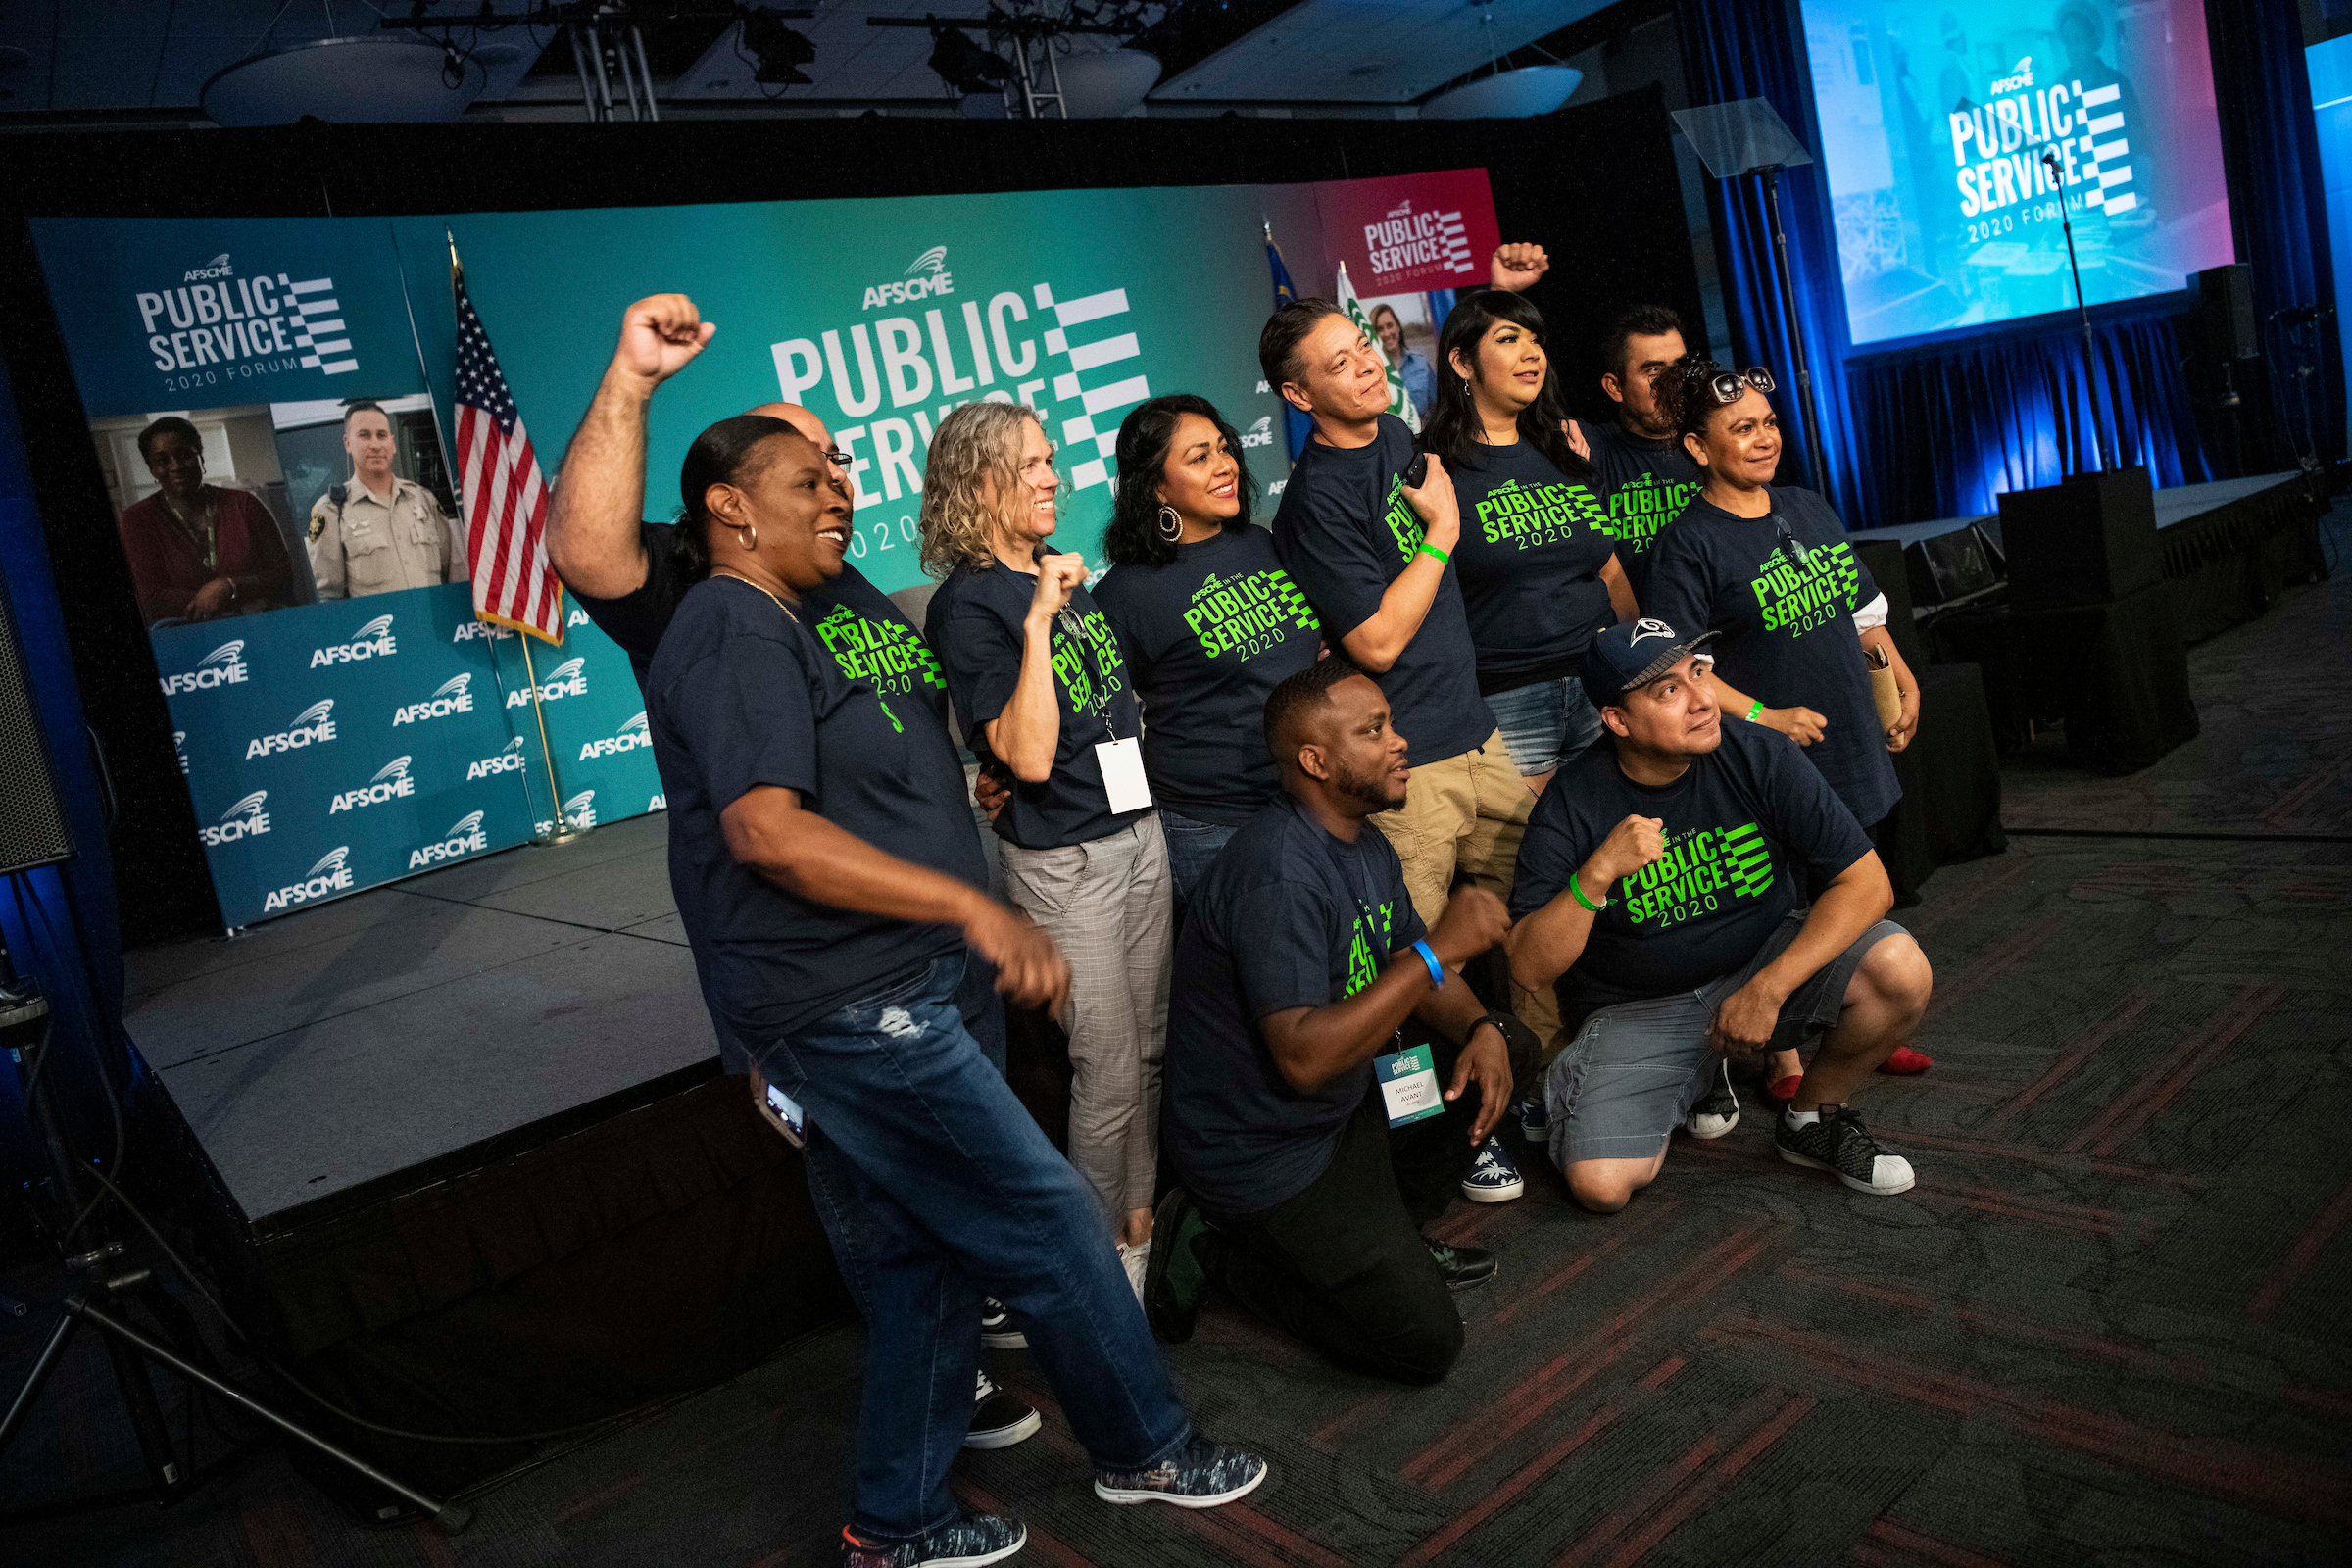 Audience members posing for a photo before the AFSCME Public Service Forum